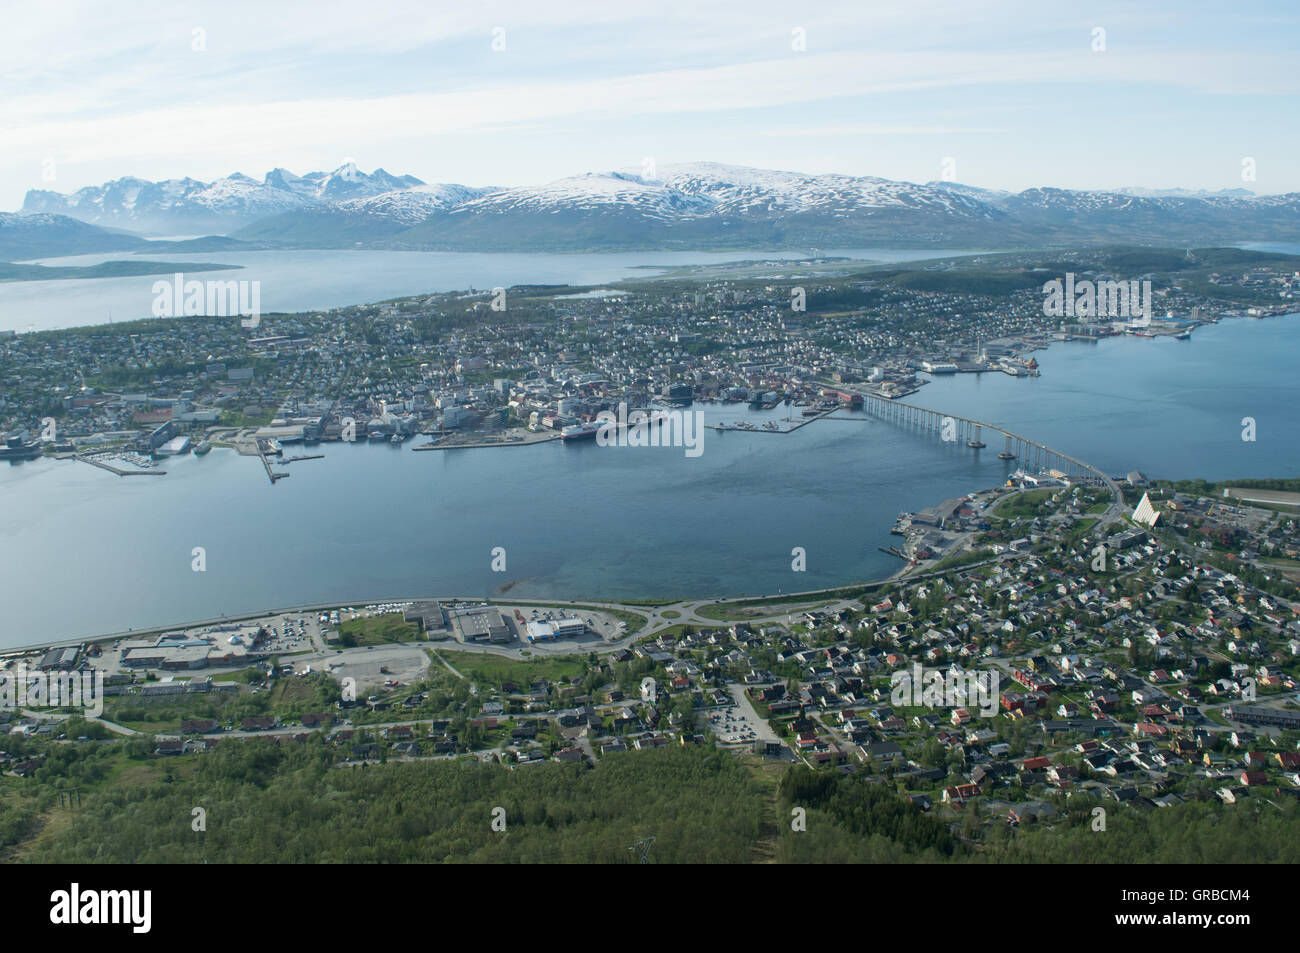 City north of artic circle - Stock Image